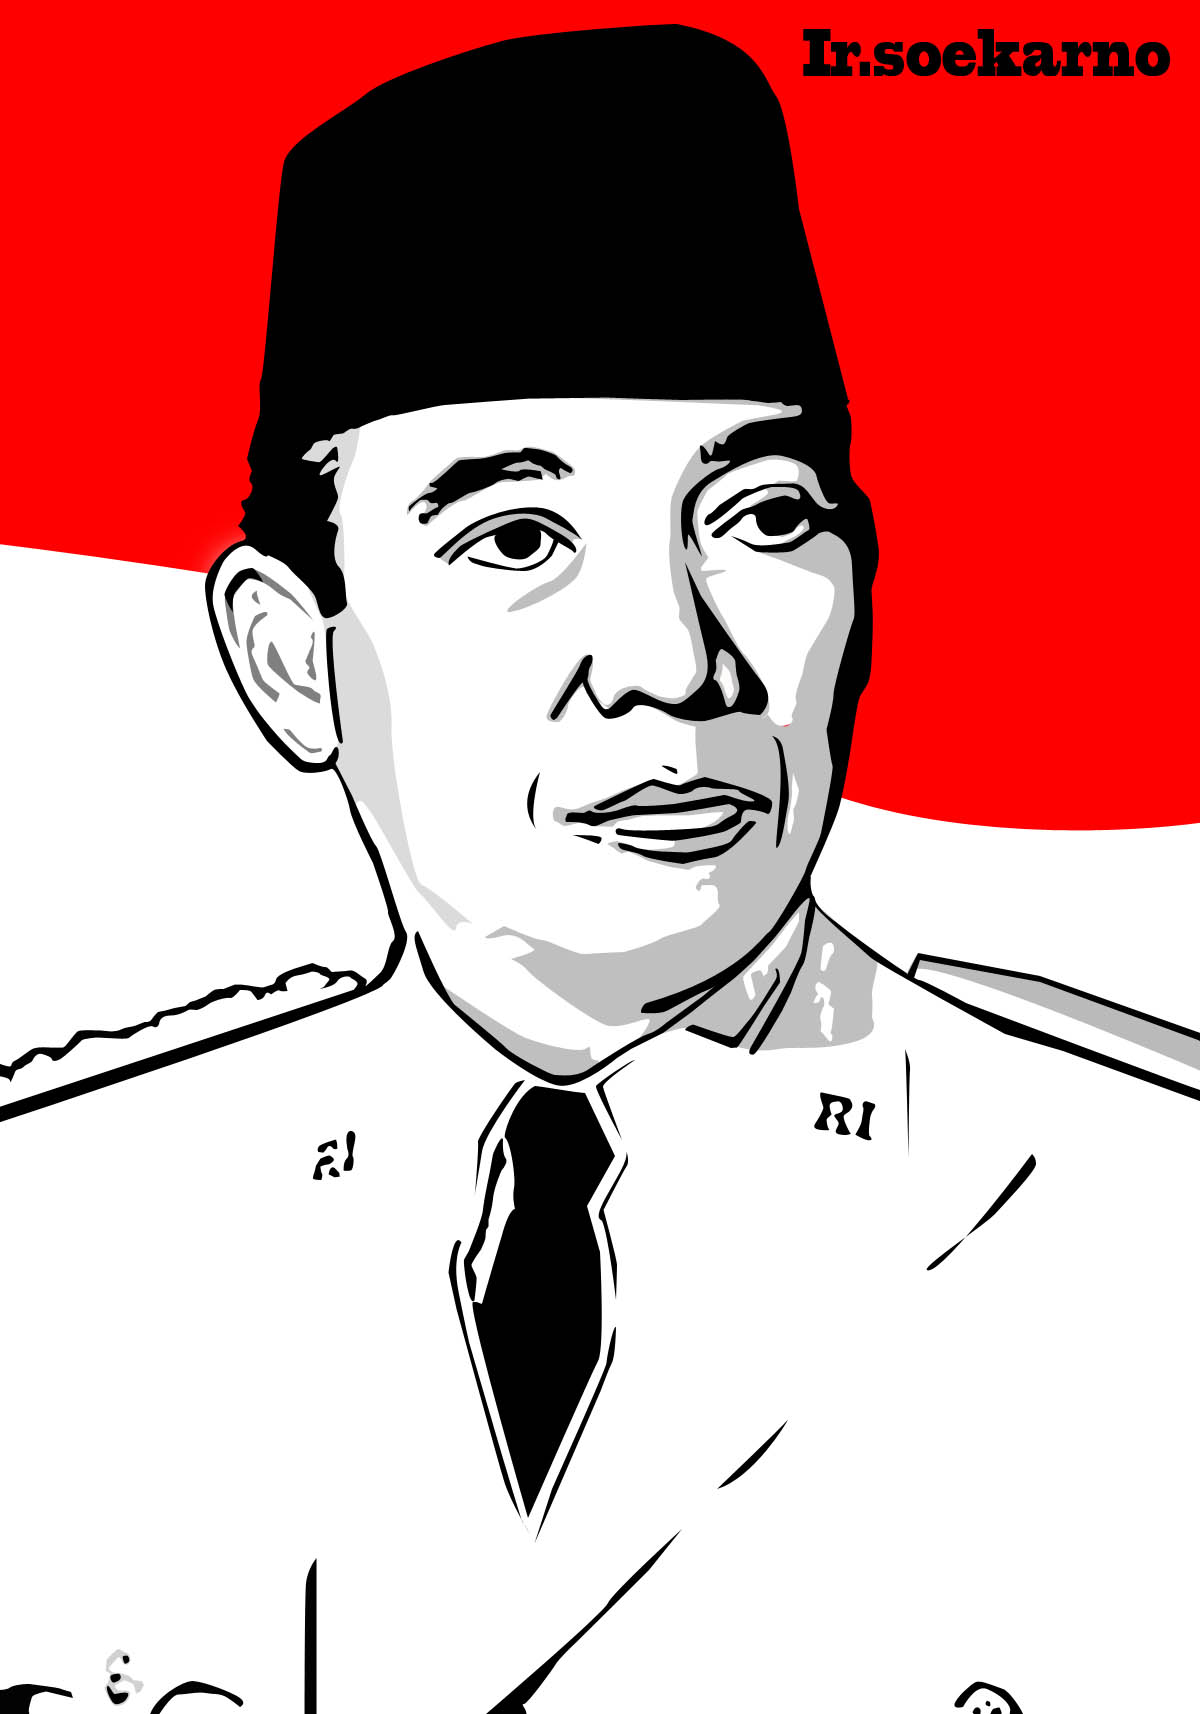 vector ir soekarno by anhartdesign on deviantart vector ir soekarno by anhartdesign on